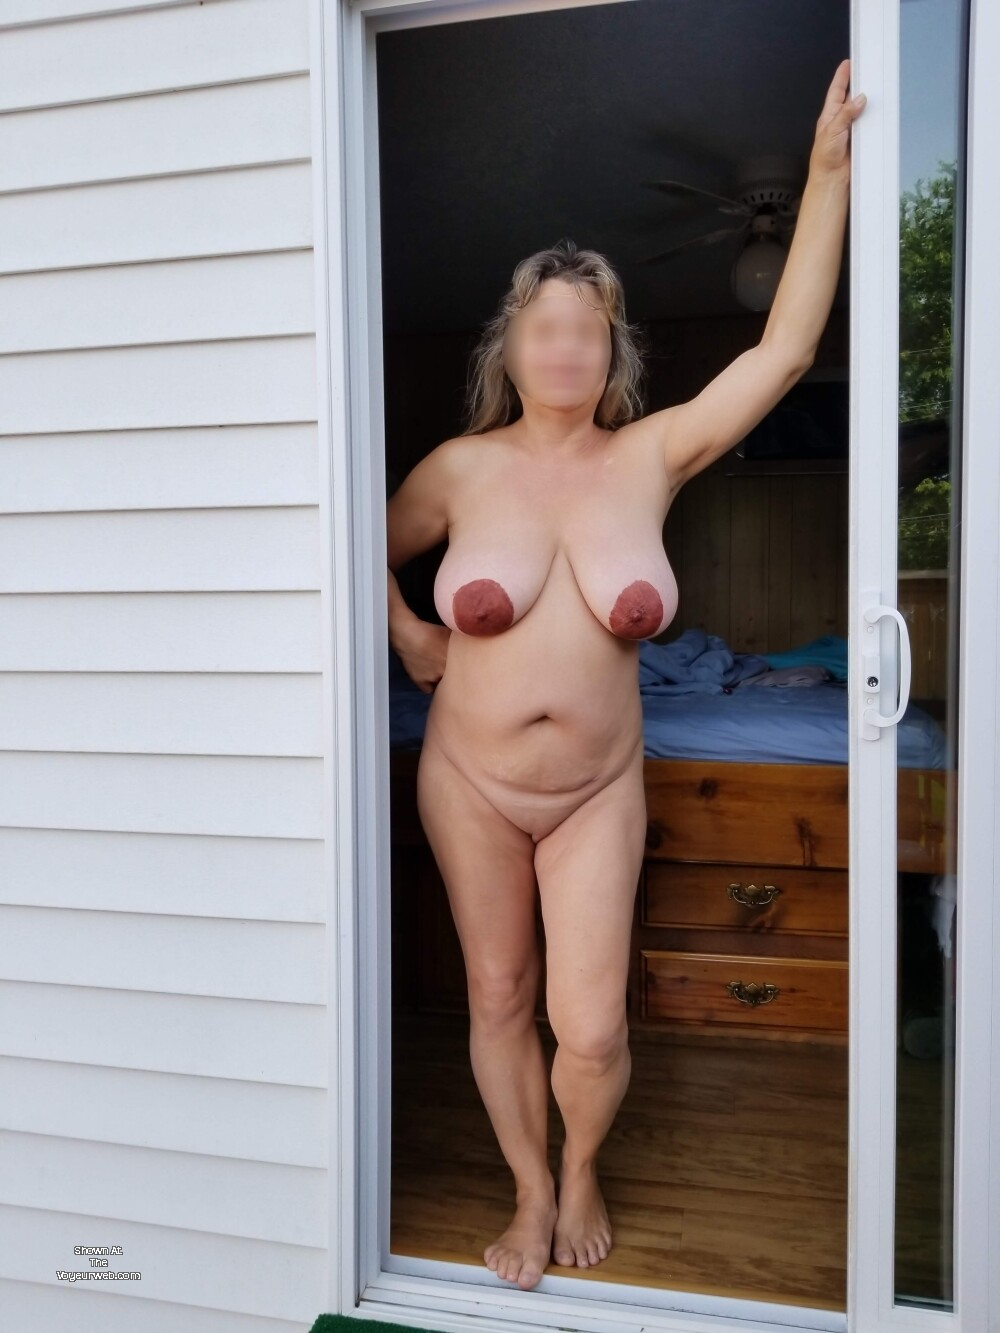 Very Large Tits Of My Wife Mature Wife June 2019 Voyeur Web